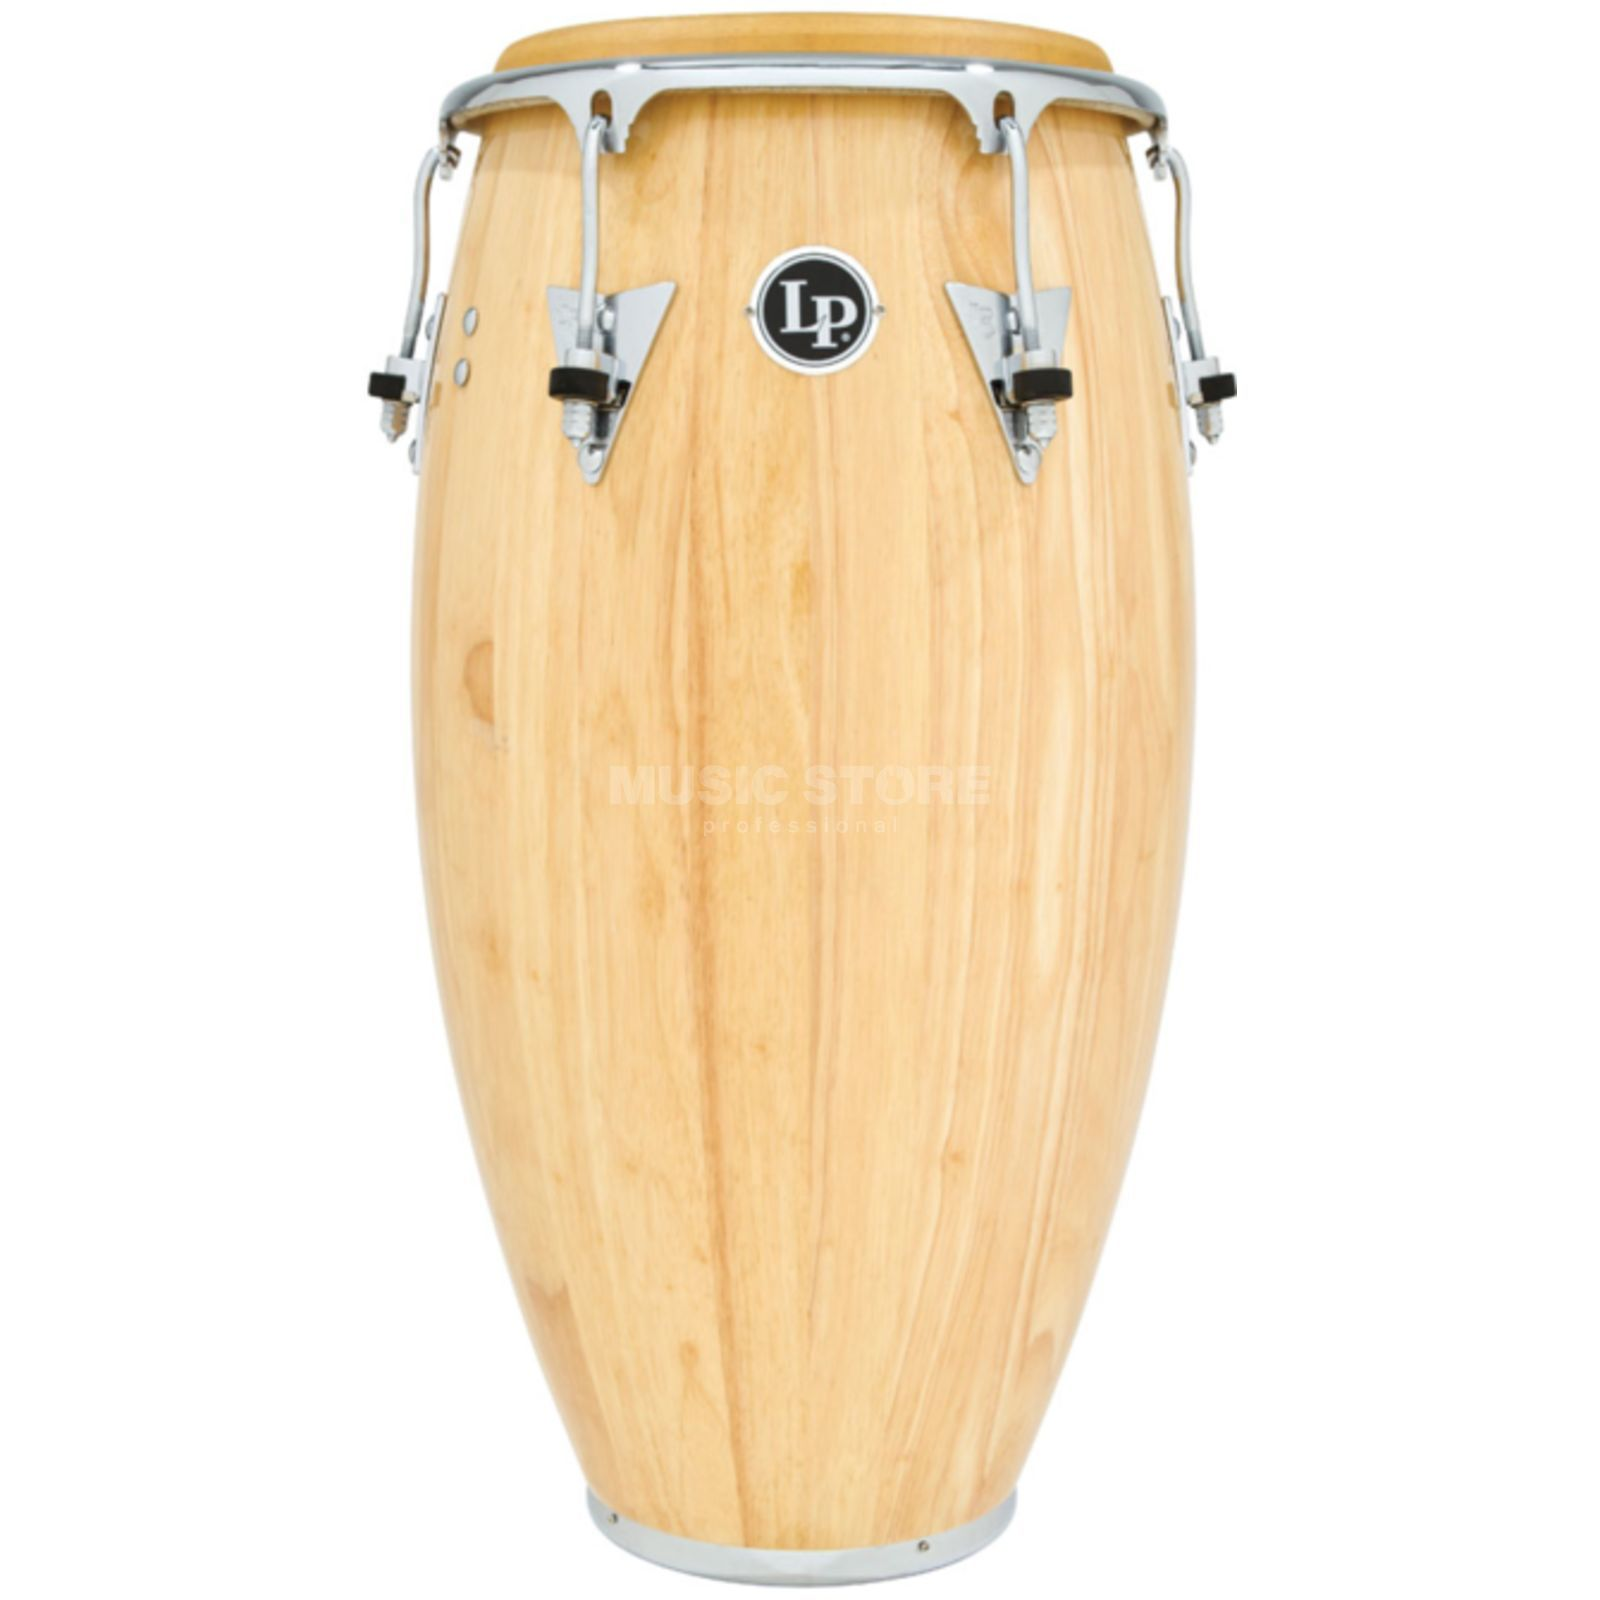 "Latin Percussion Classic Conga LP559X-AWC 11 3/4"", naturel Image du produit"